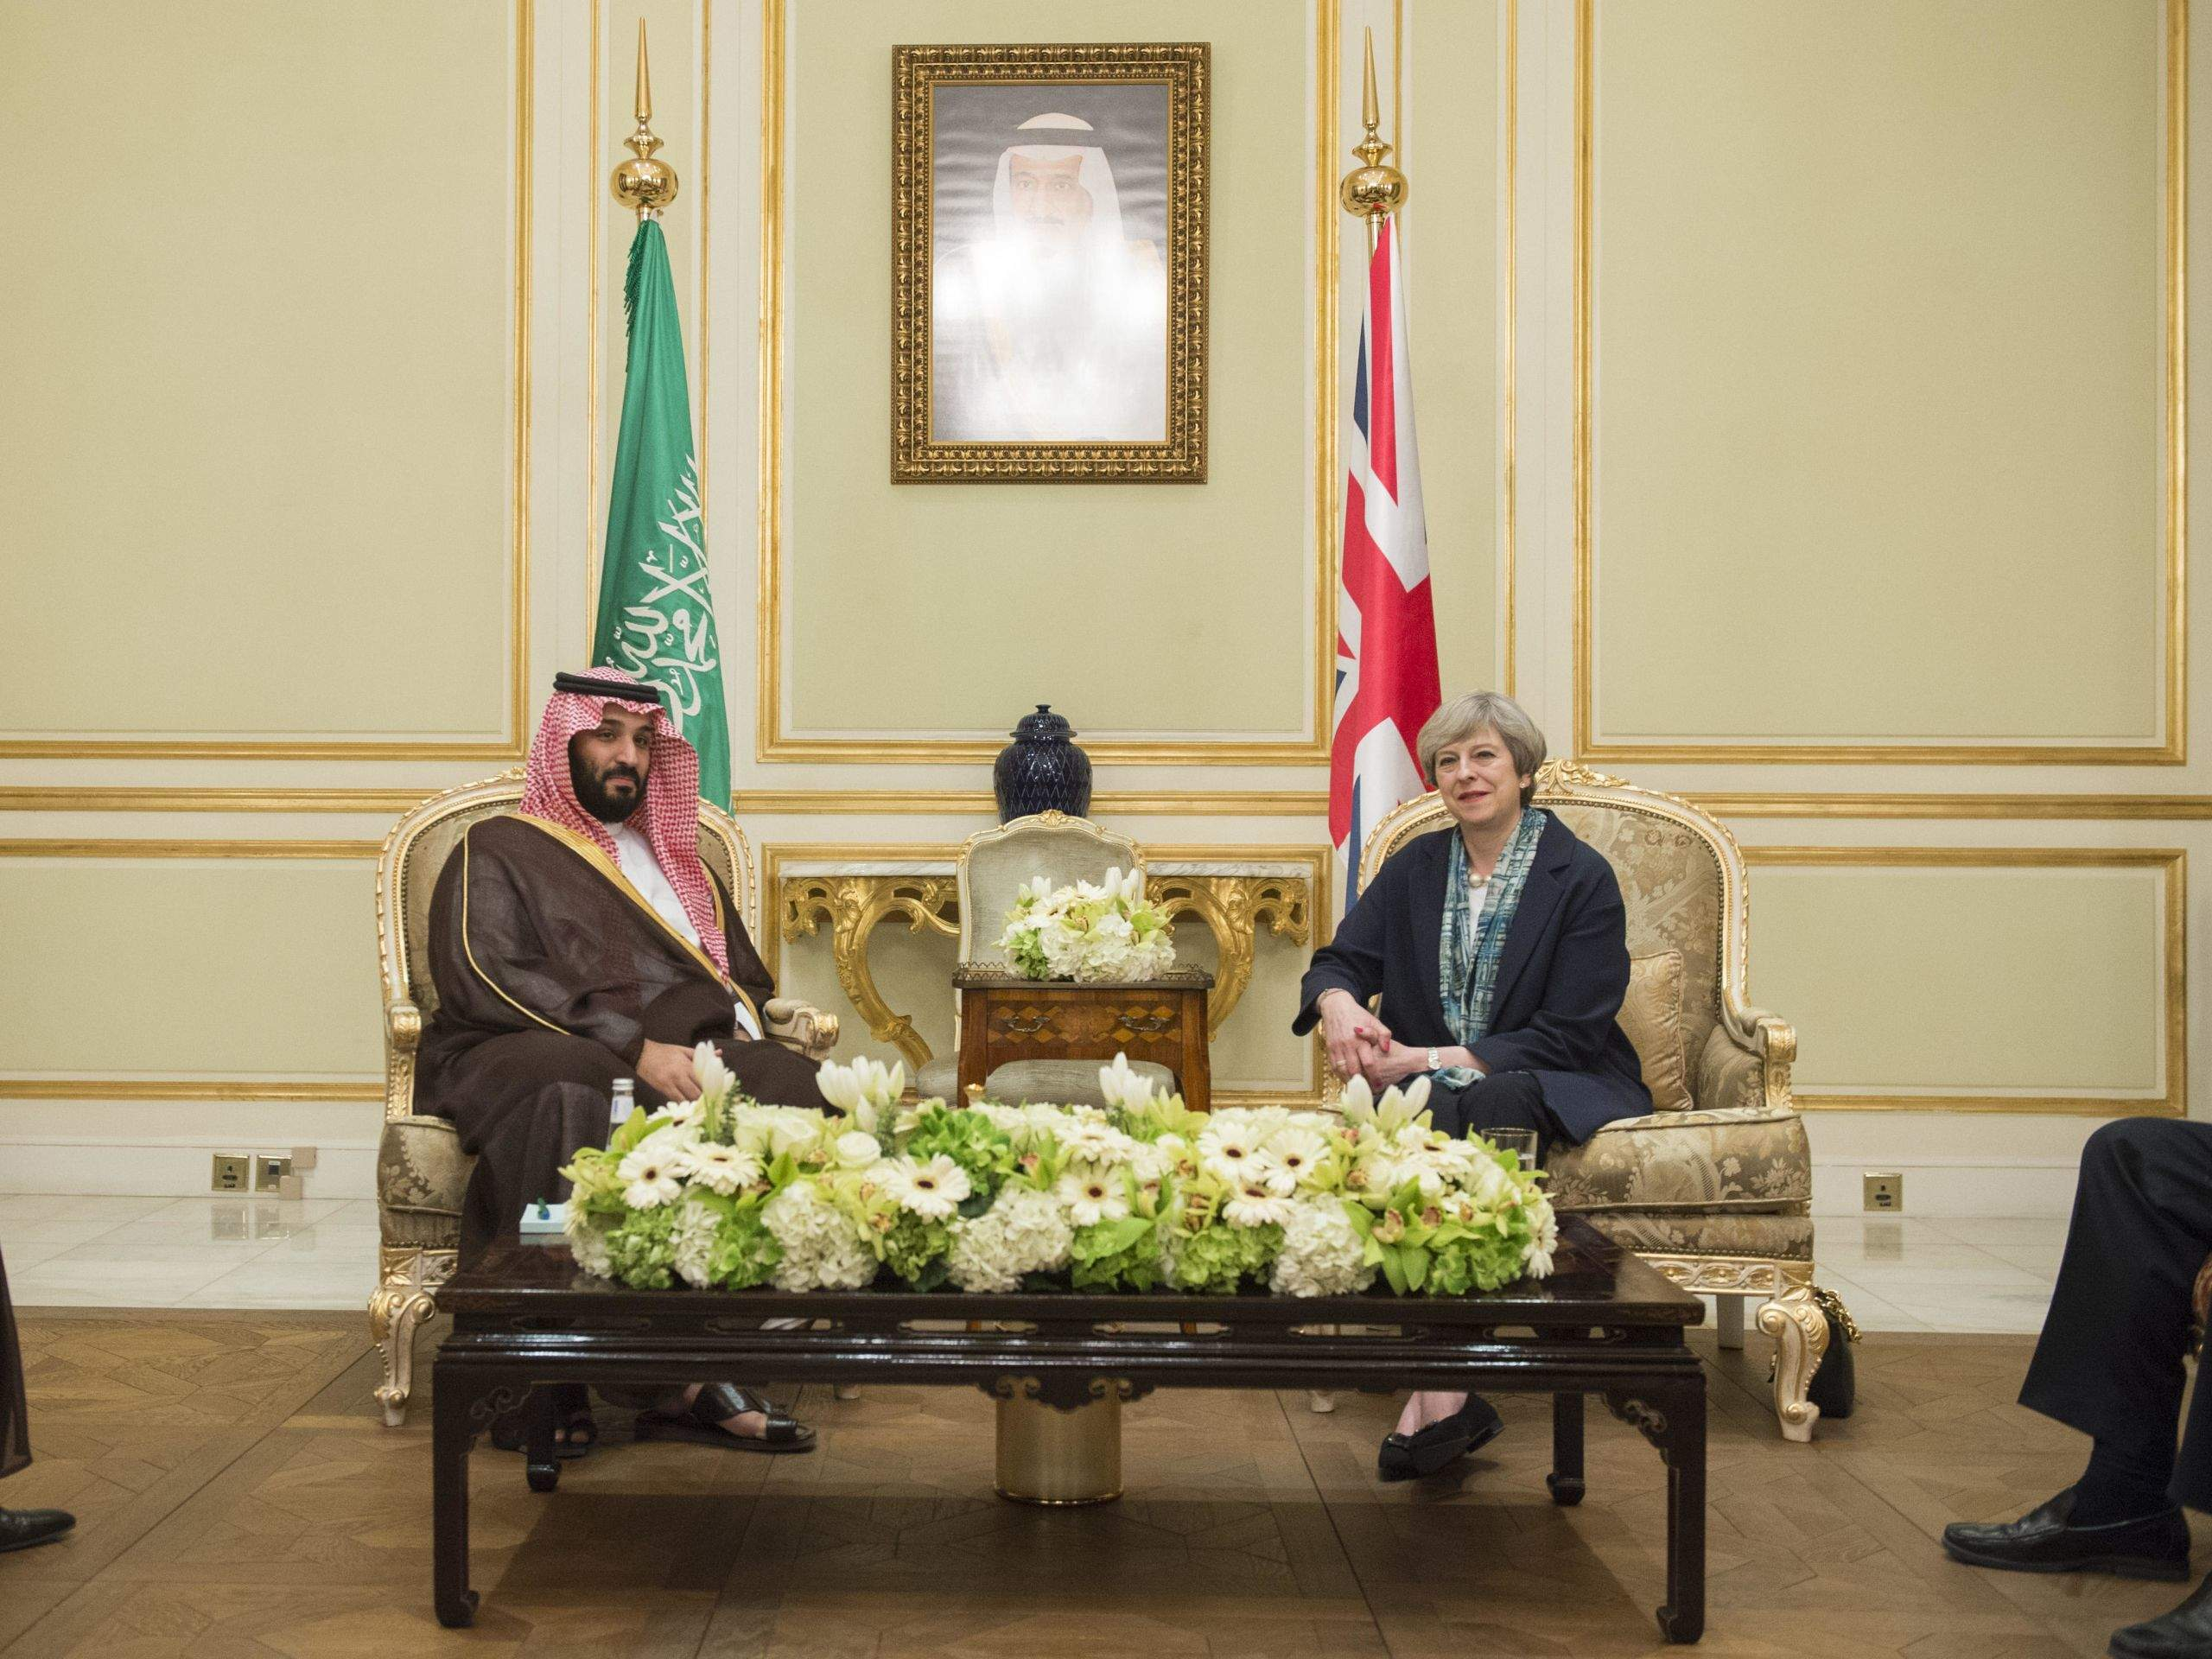 The Saudi Crown Prince gets the red carpet treatment in the UK as protesters take to the streets